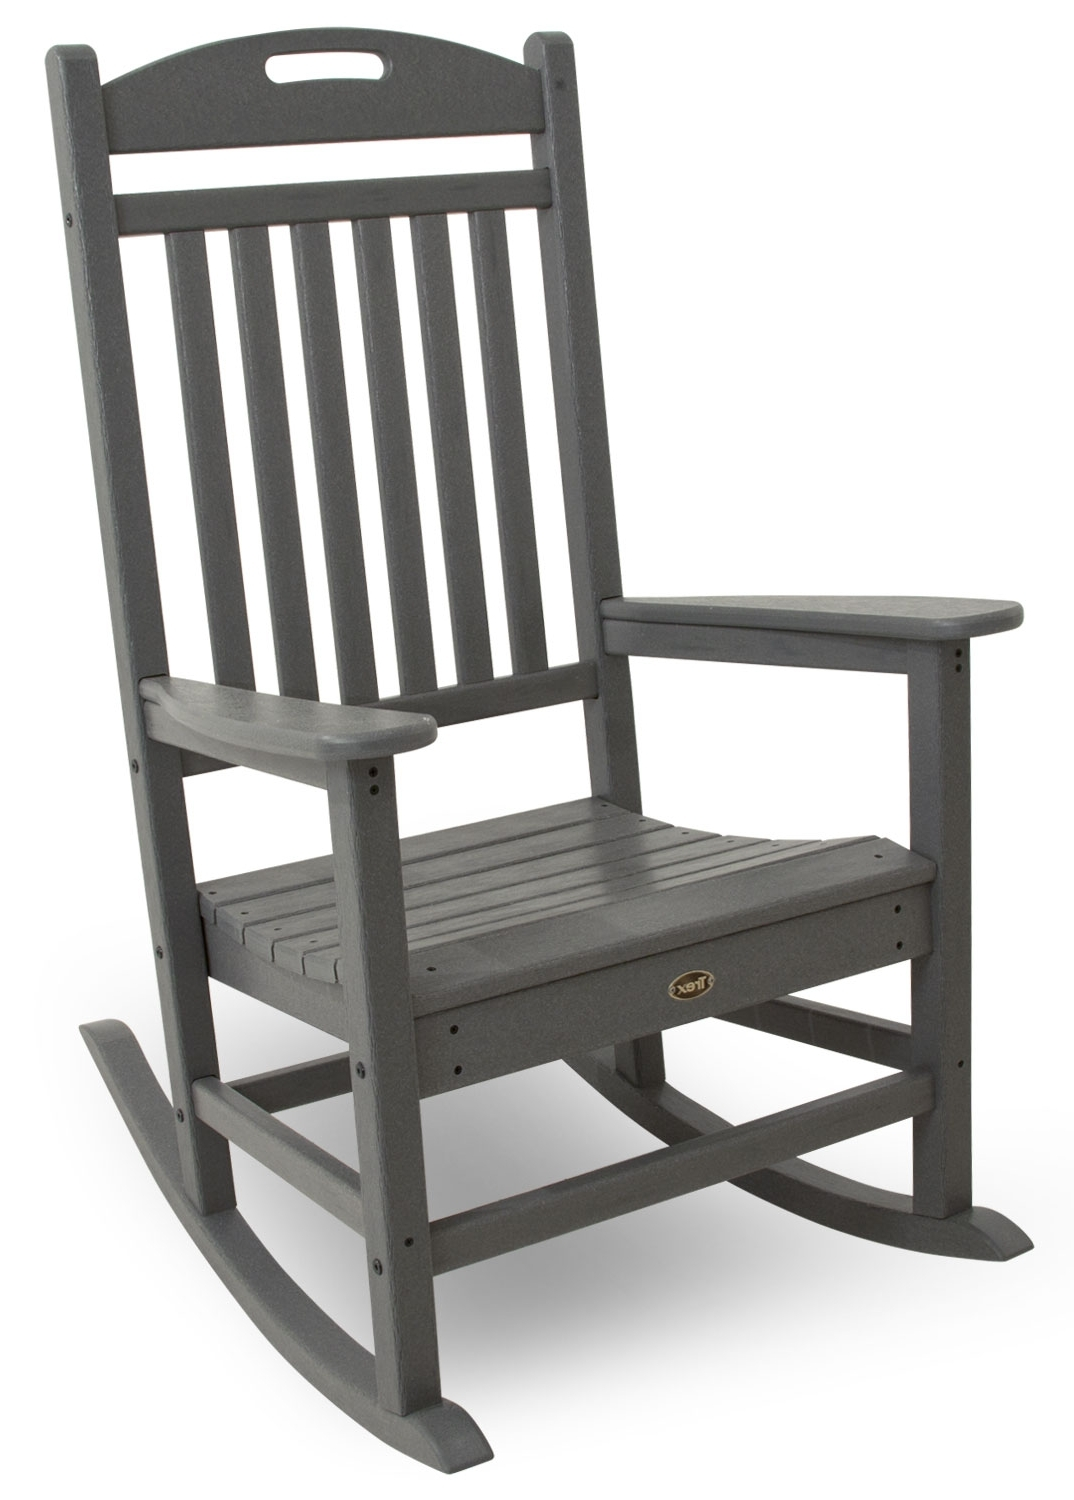 Livingroom : Shop Adams Mfg Corp Stackable Resin Rocking Chair At Pertaining To Most Recently Released Stackable Patio Rocking Chairs (View 15 of 15)